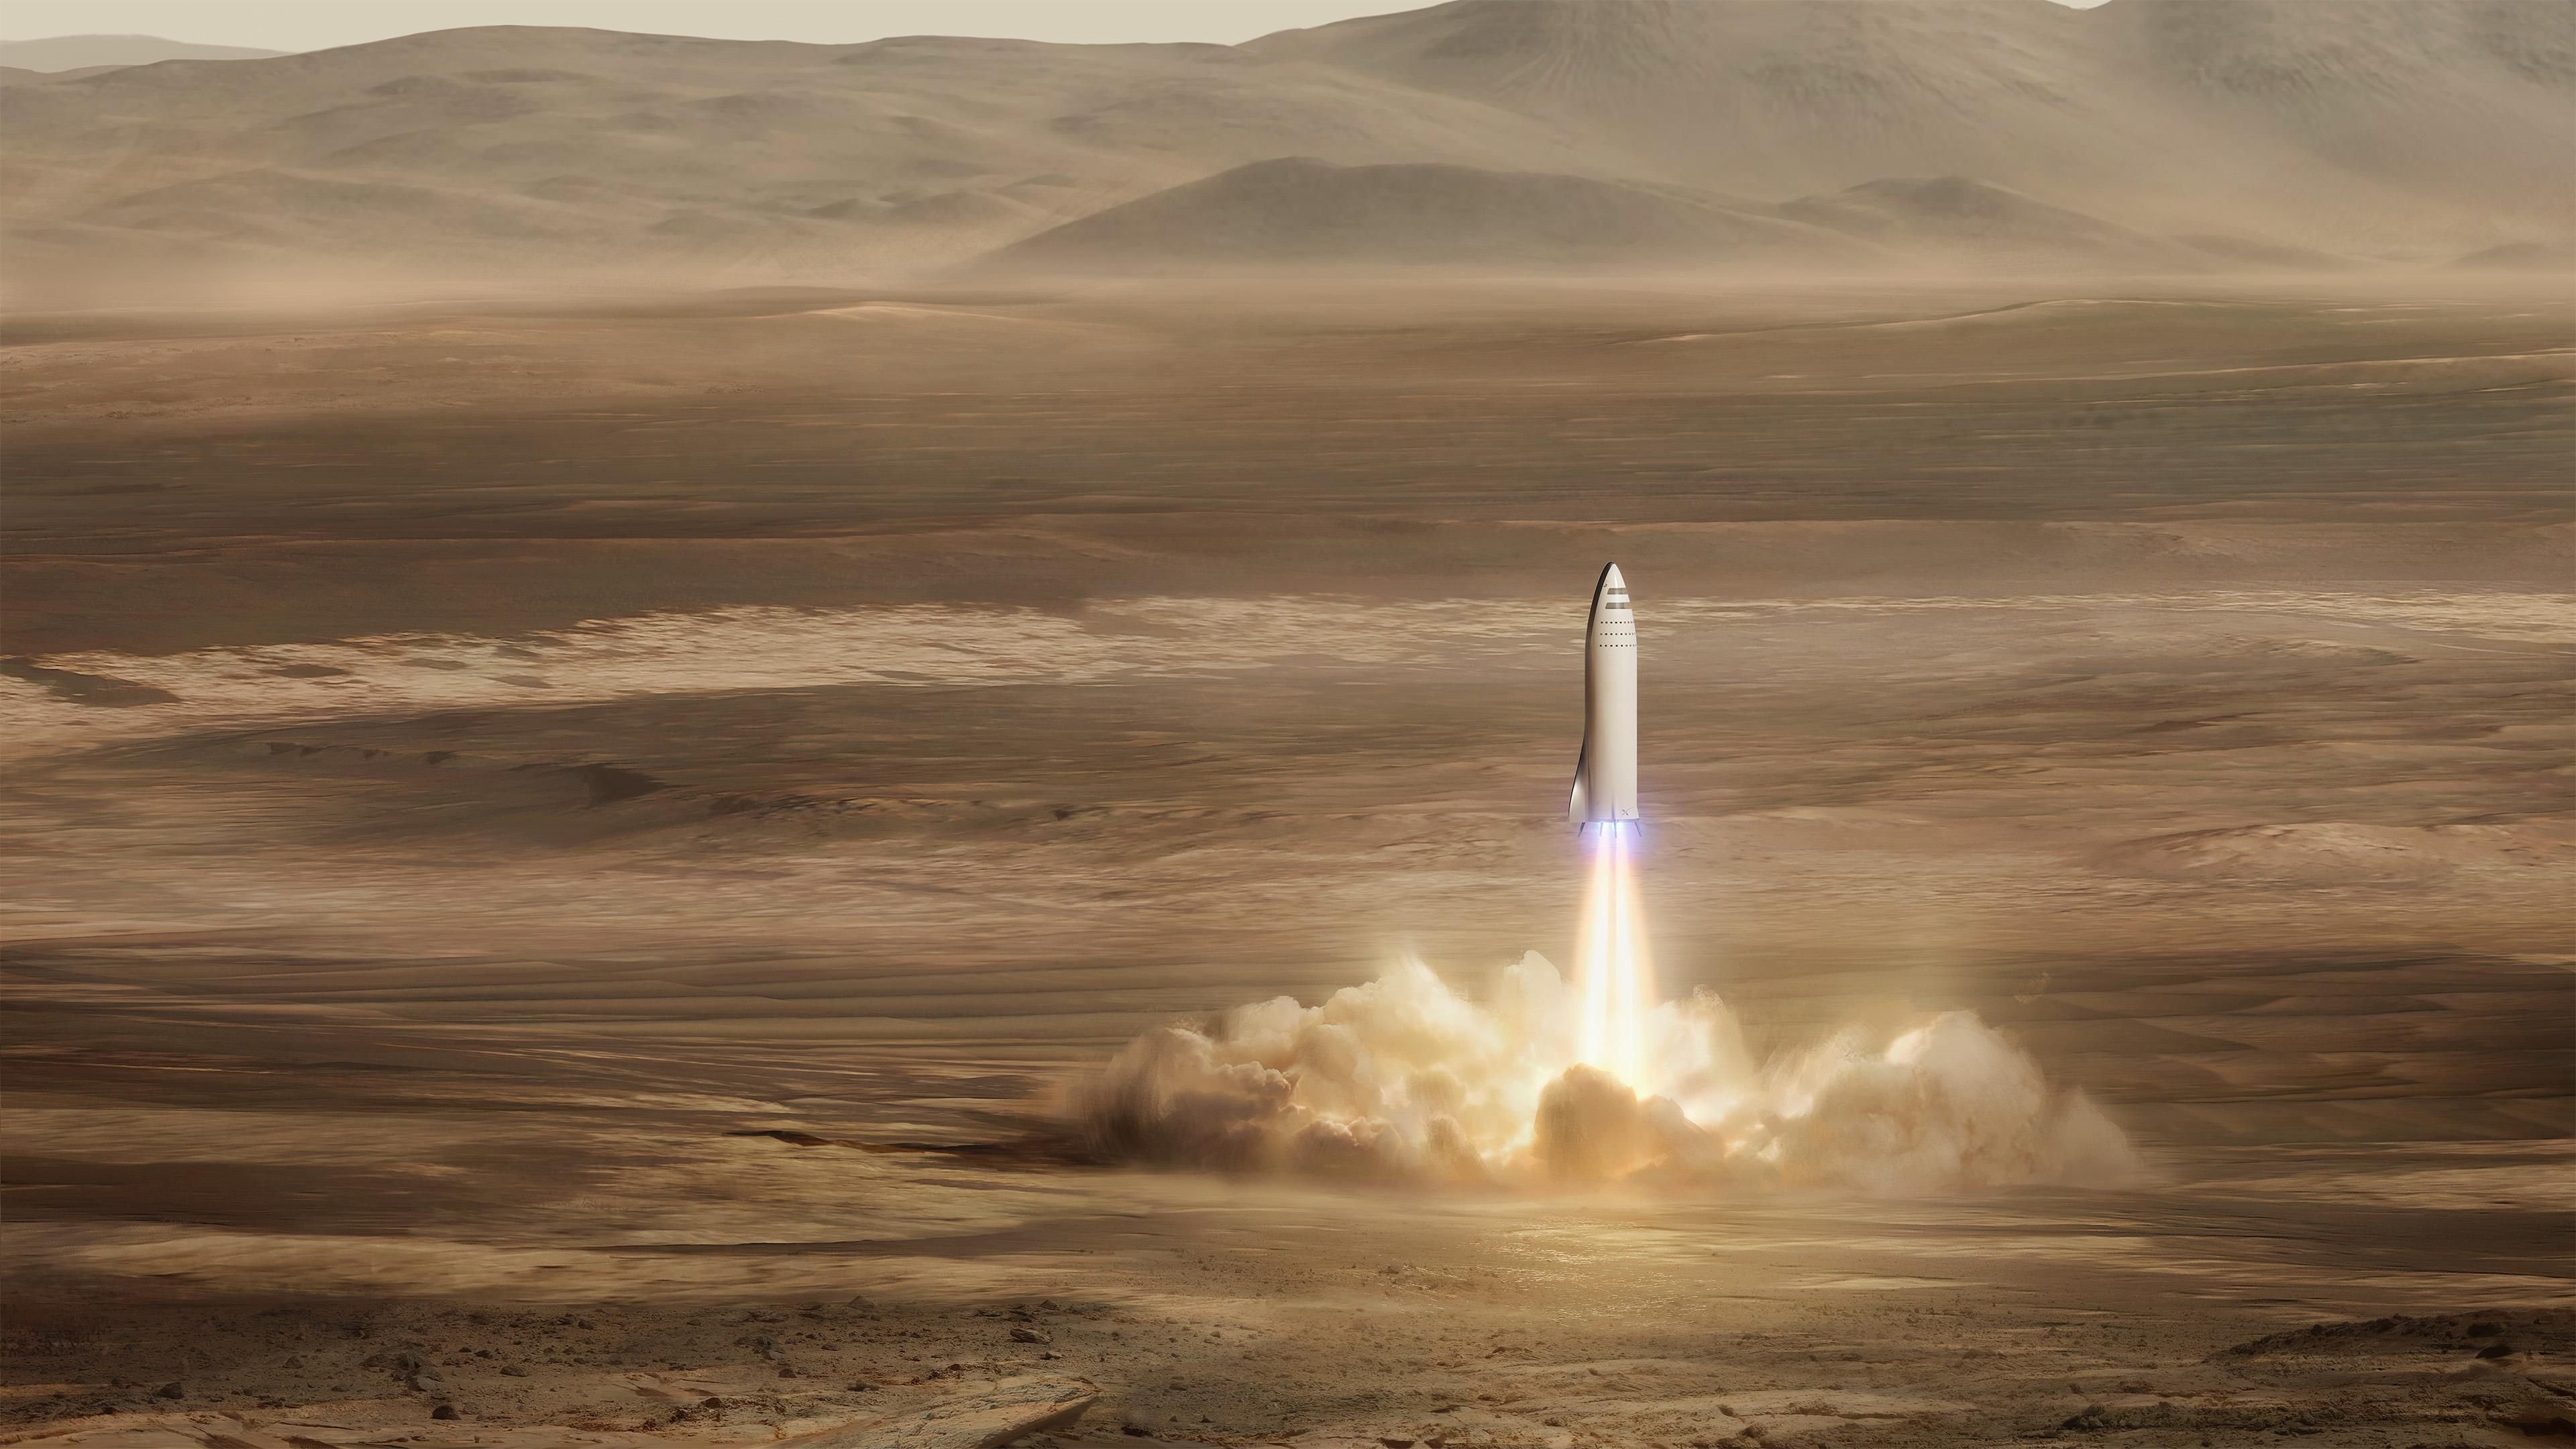 Bfr Mars Mission Spacex Spacex Mission To Mars Elon Musk Rocket